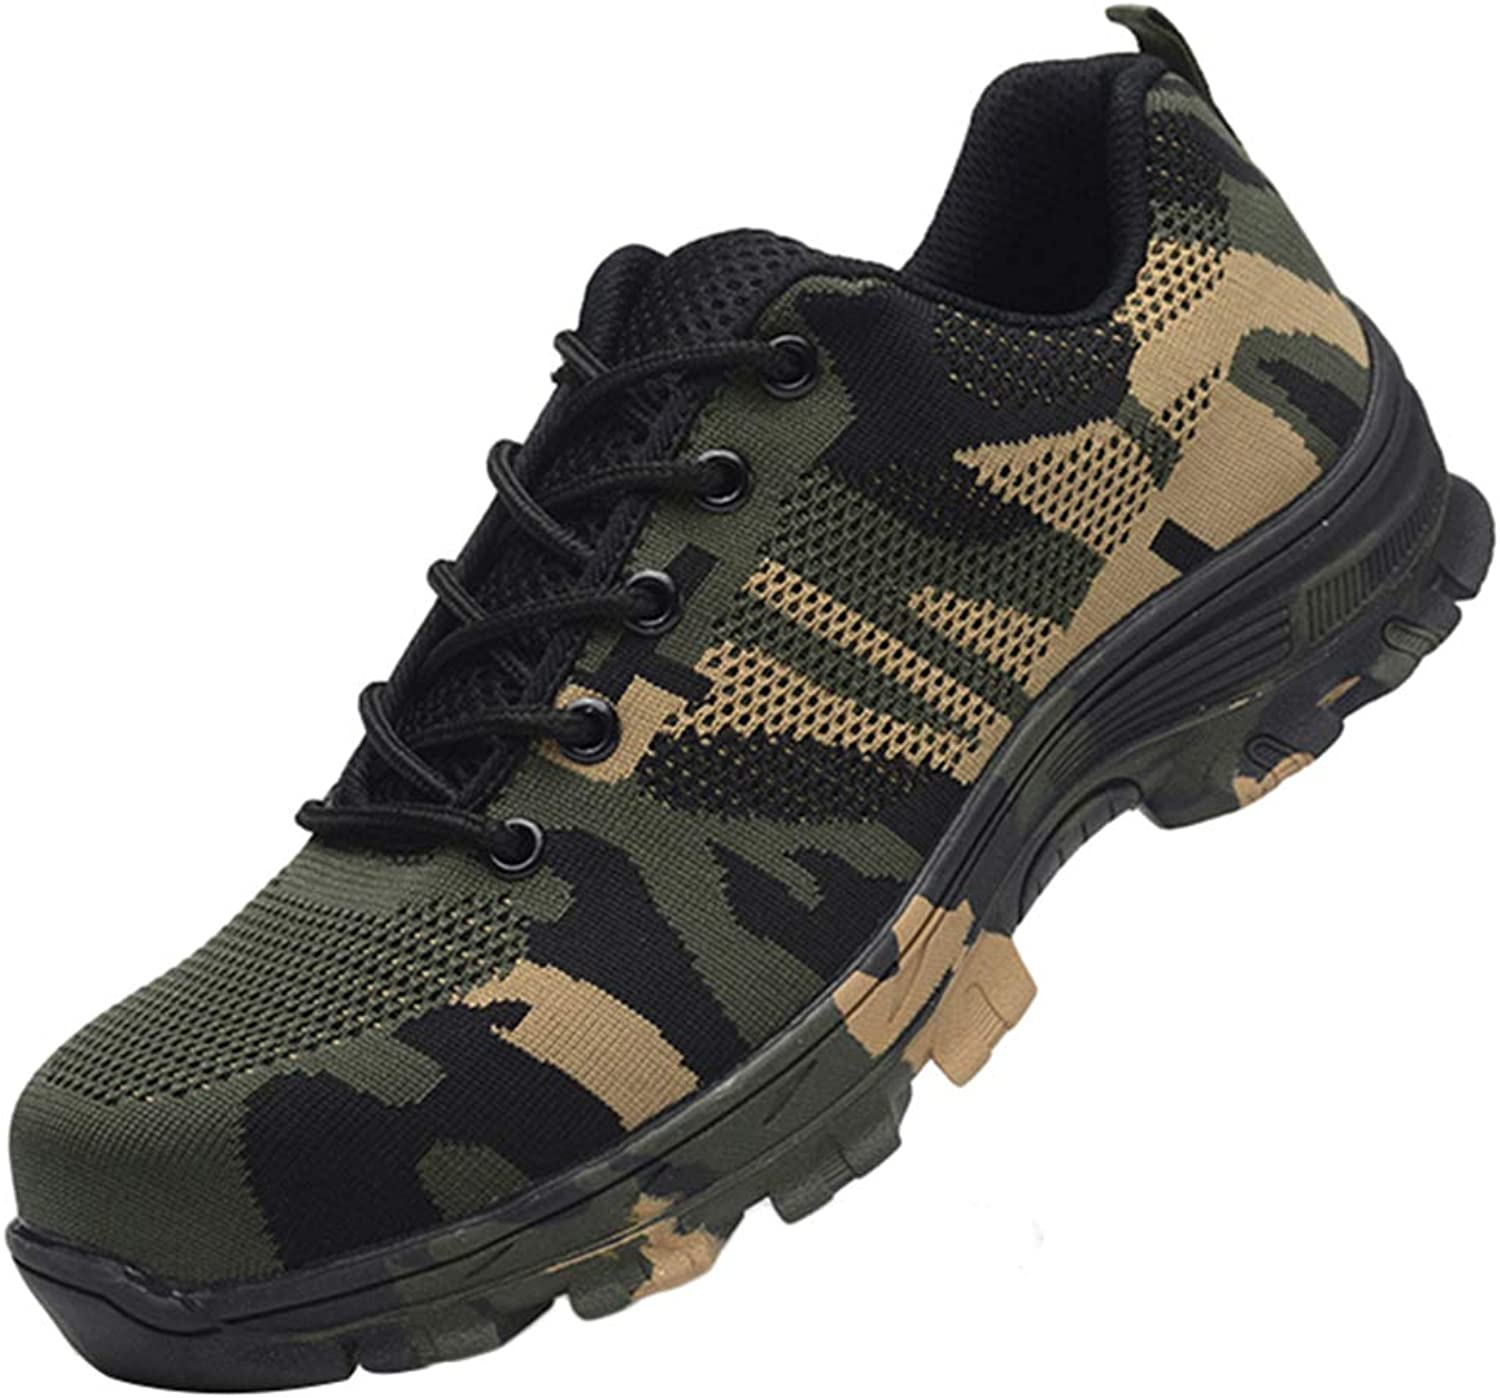 WZSSSS Work Safety shoes, Steel Toe Puncture Proof Boots Comfortable Industrial & Construction shoes for Men and Women